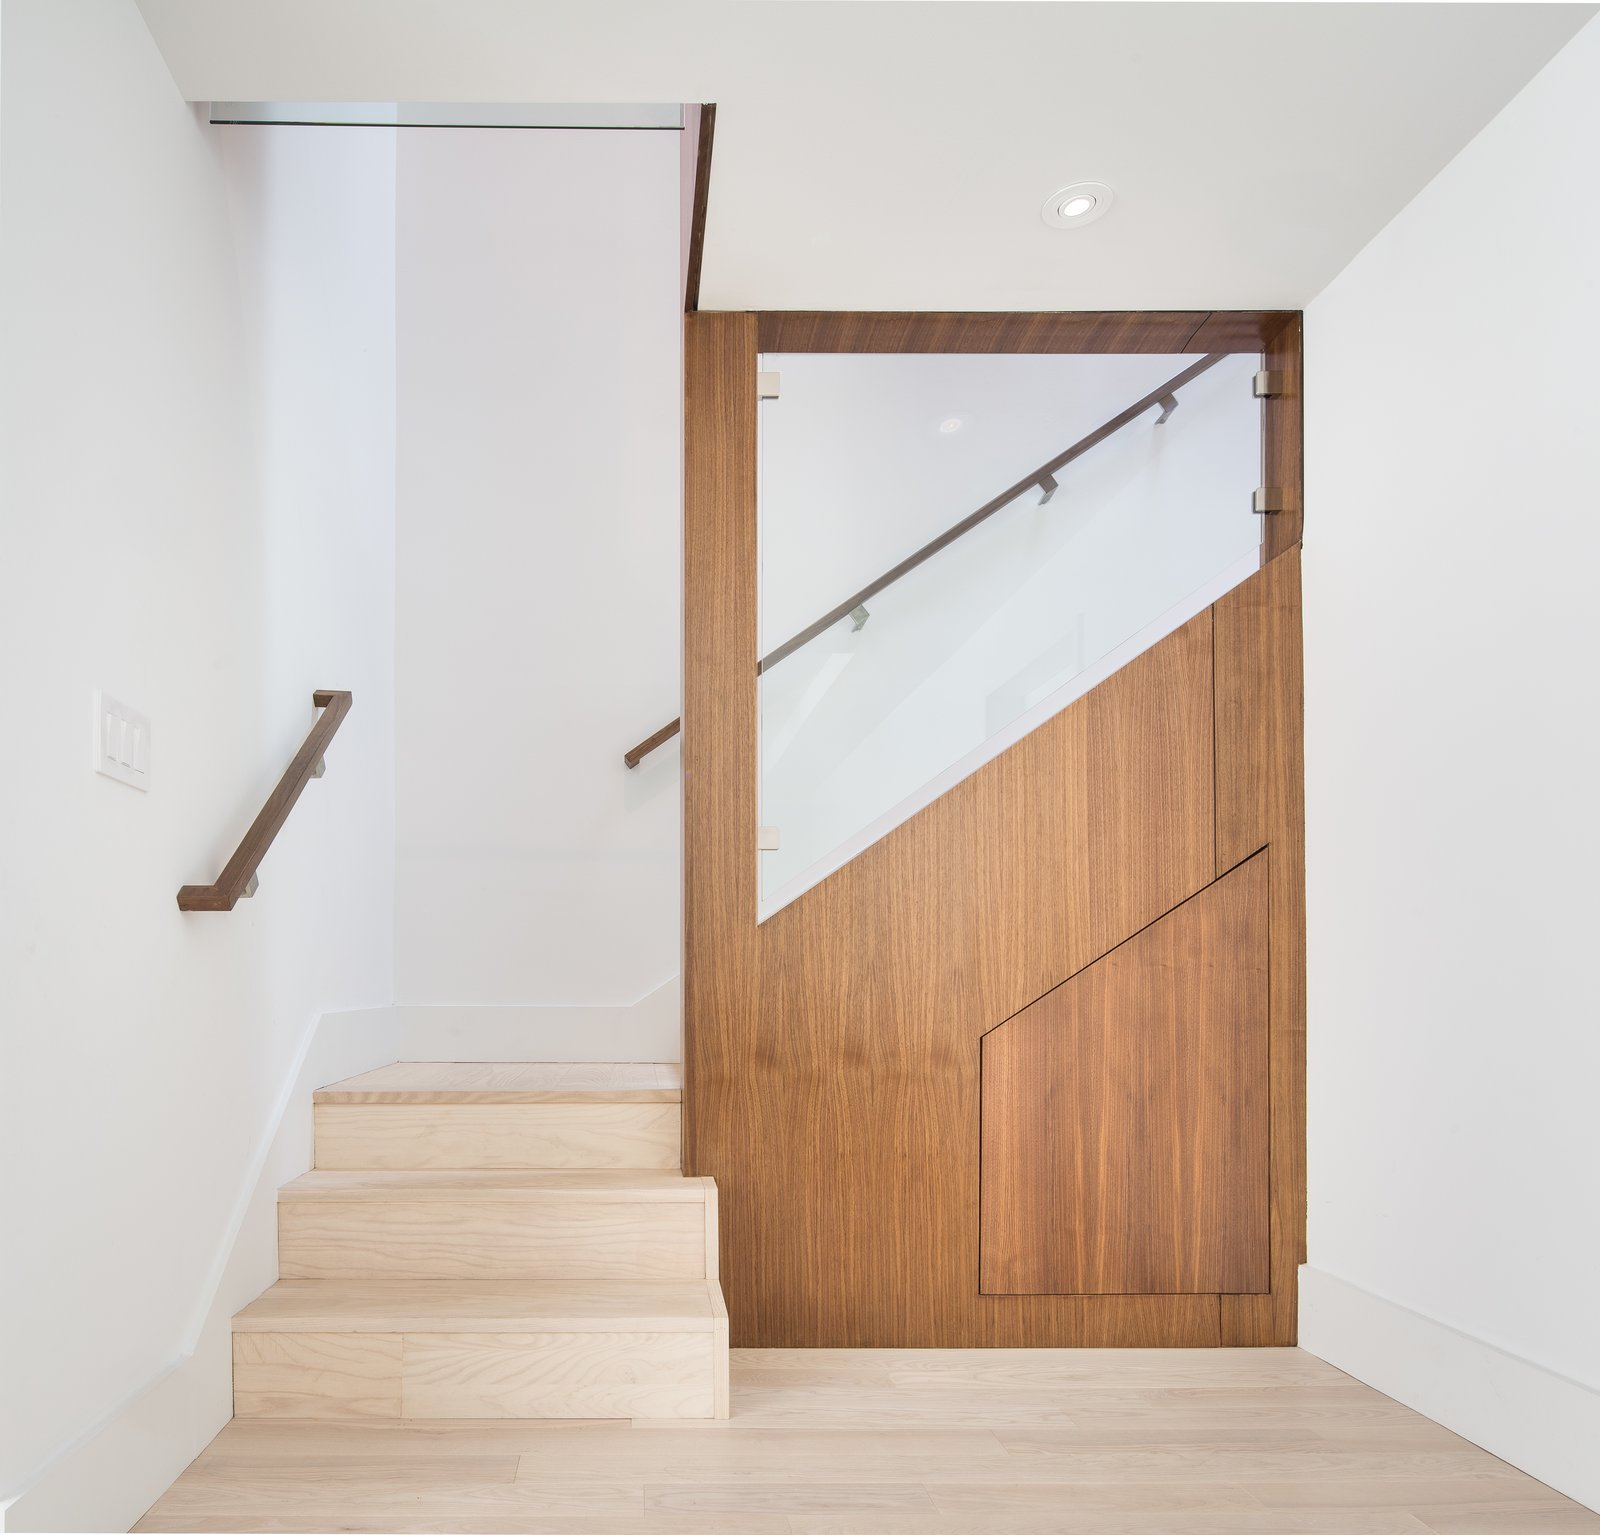 Back Yard, Glass, Hardscapes, Small, Horizontal, Wood, Engineered Quartz, Wood, White, Light Hardwood, Ceramic Tile, Ceiling, Recessed, Accent, Refrigerator, Range, Range Hood, Dishwasher, Undermount, and Staircase  Best Staircase Small Light Hardwood Photos from 30th Street Residence